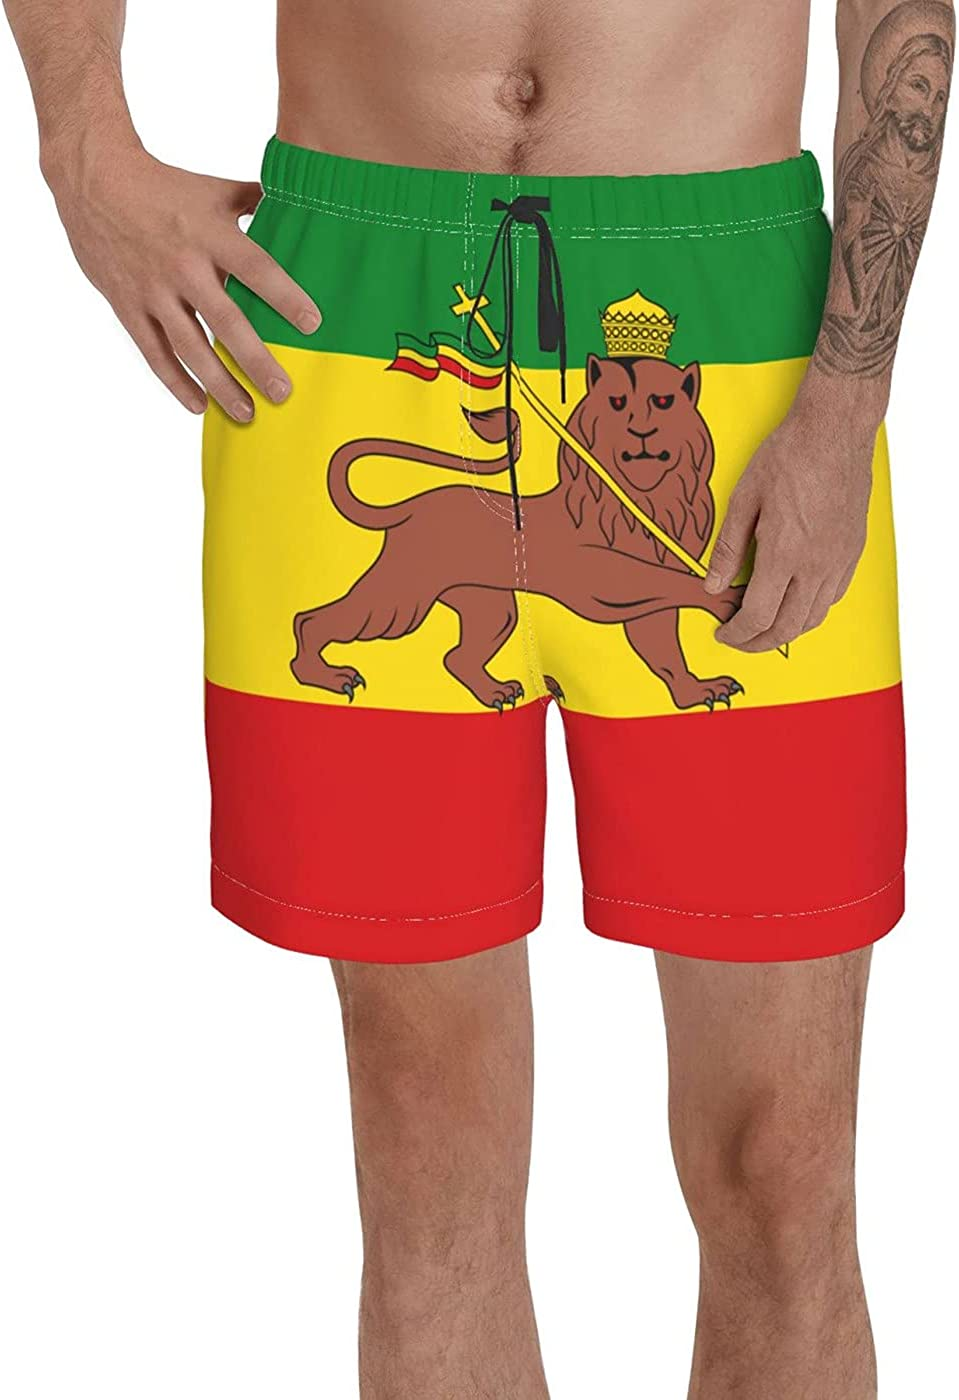 Count Ethiopia Flag with Lion Men's 3D Printed Funny Summer Quick Dry Swim Short Board Shorts with